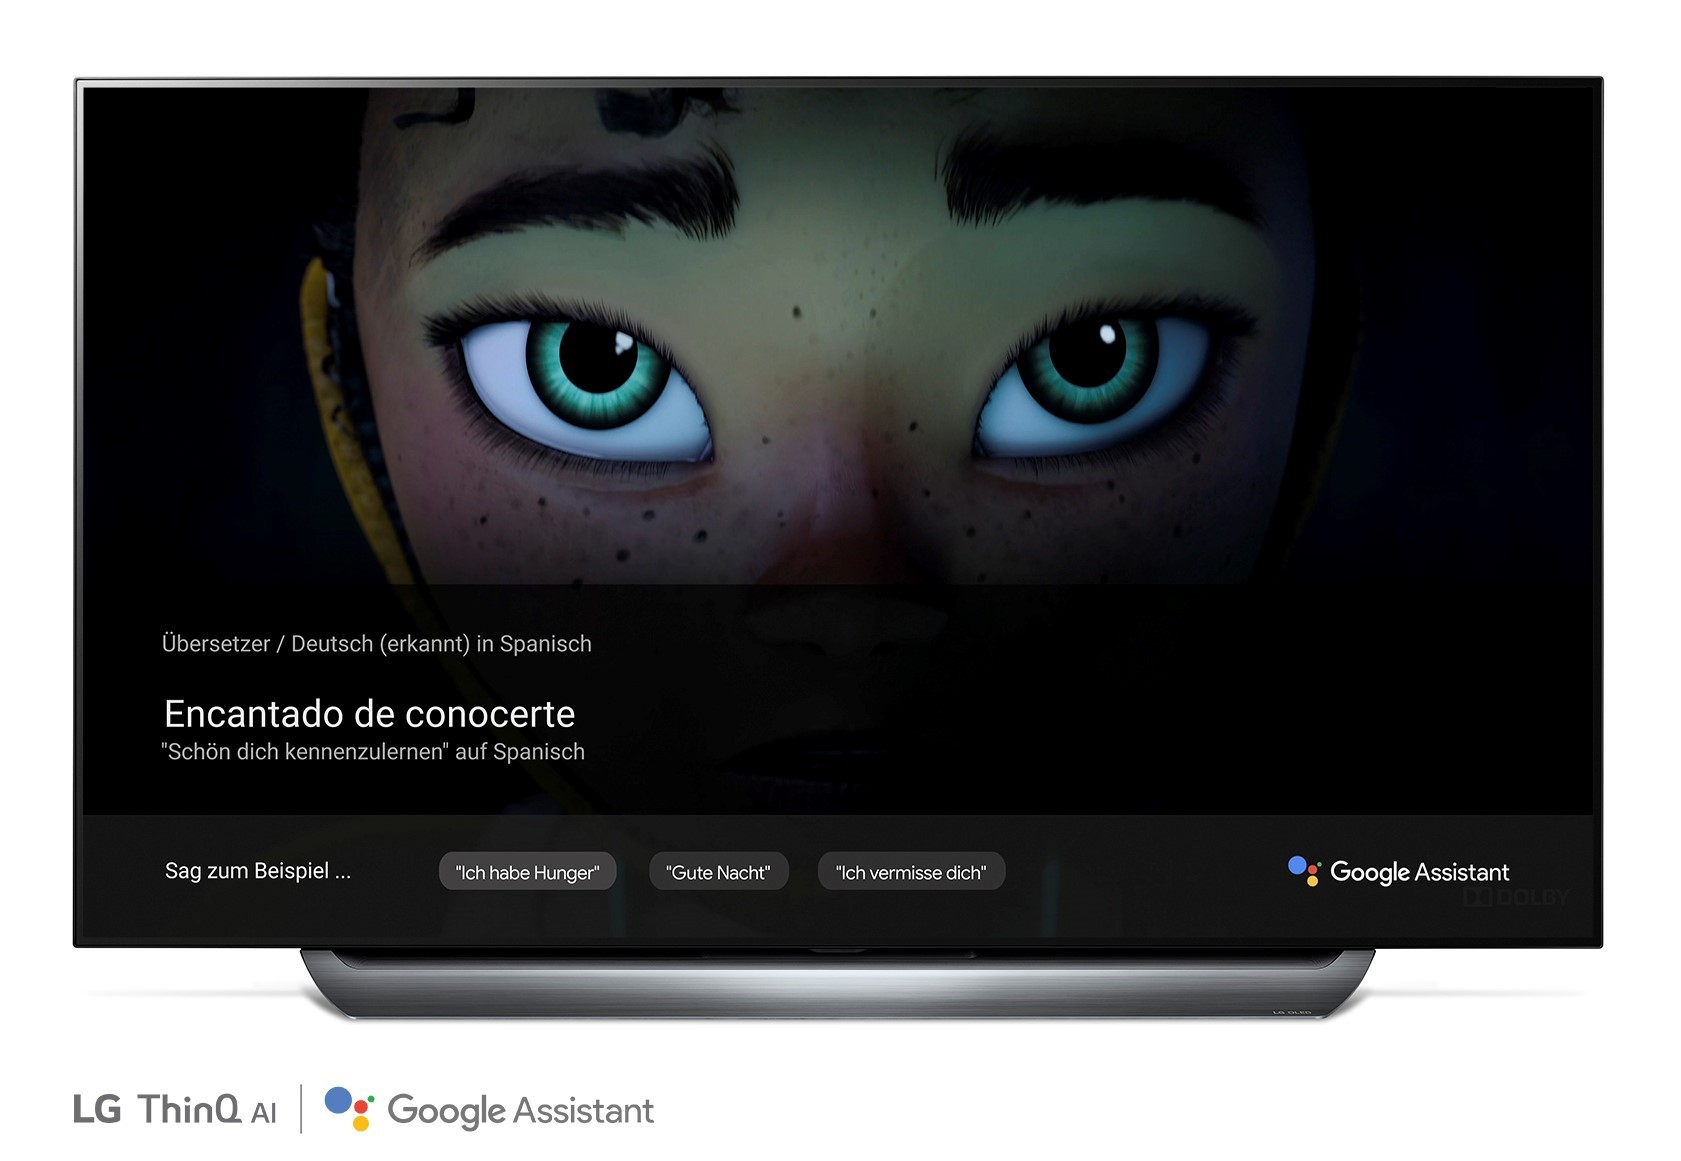 A front view of LG OLED TV showing Google Translate function